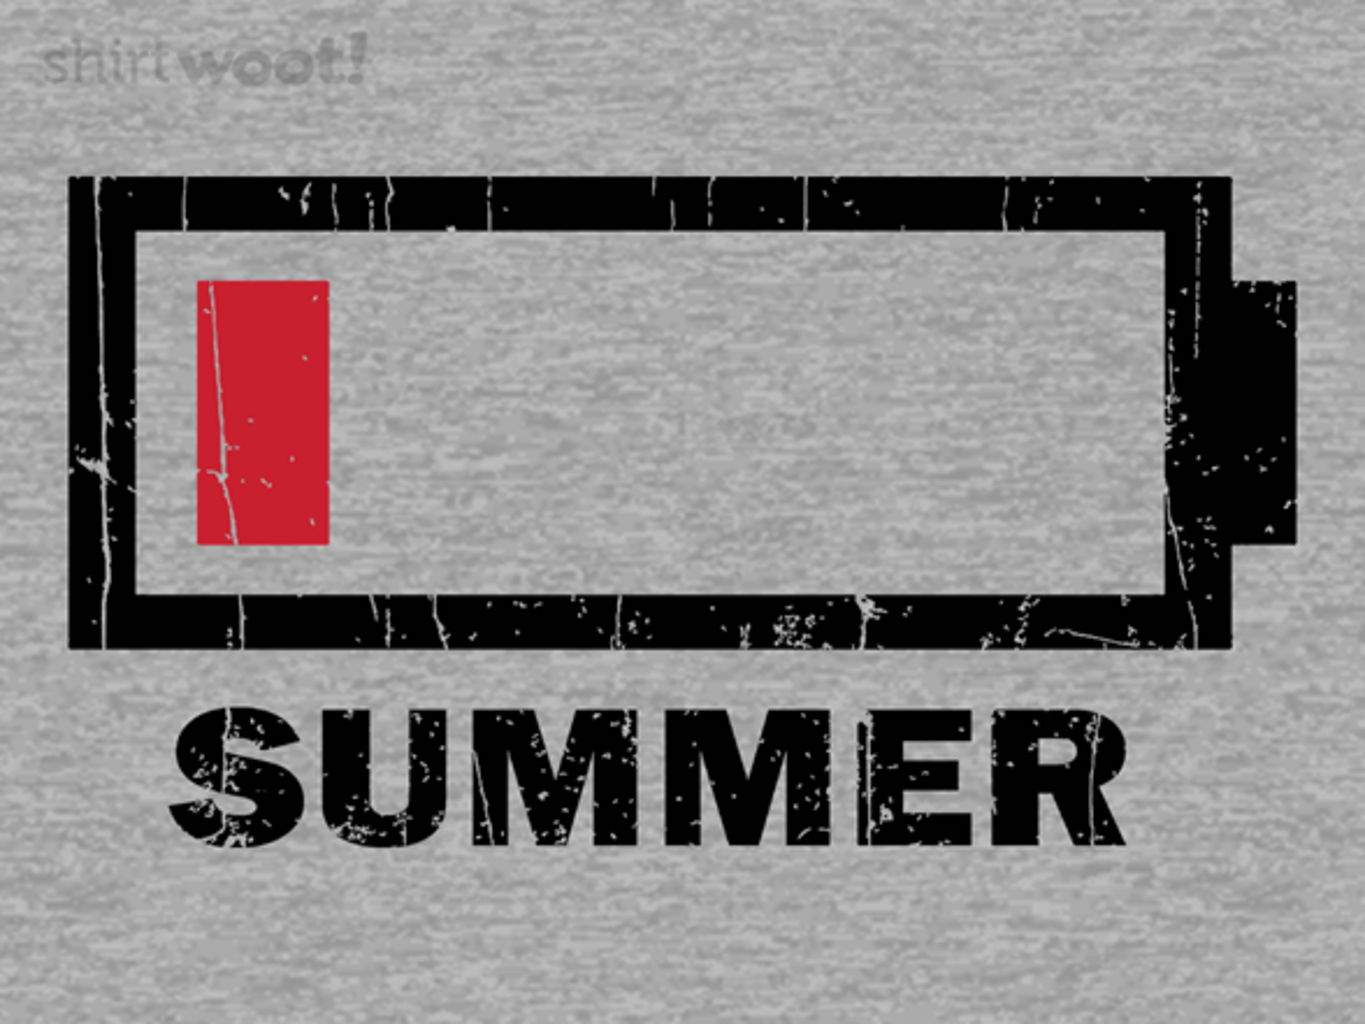 Woot!: Out of Summer